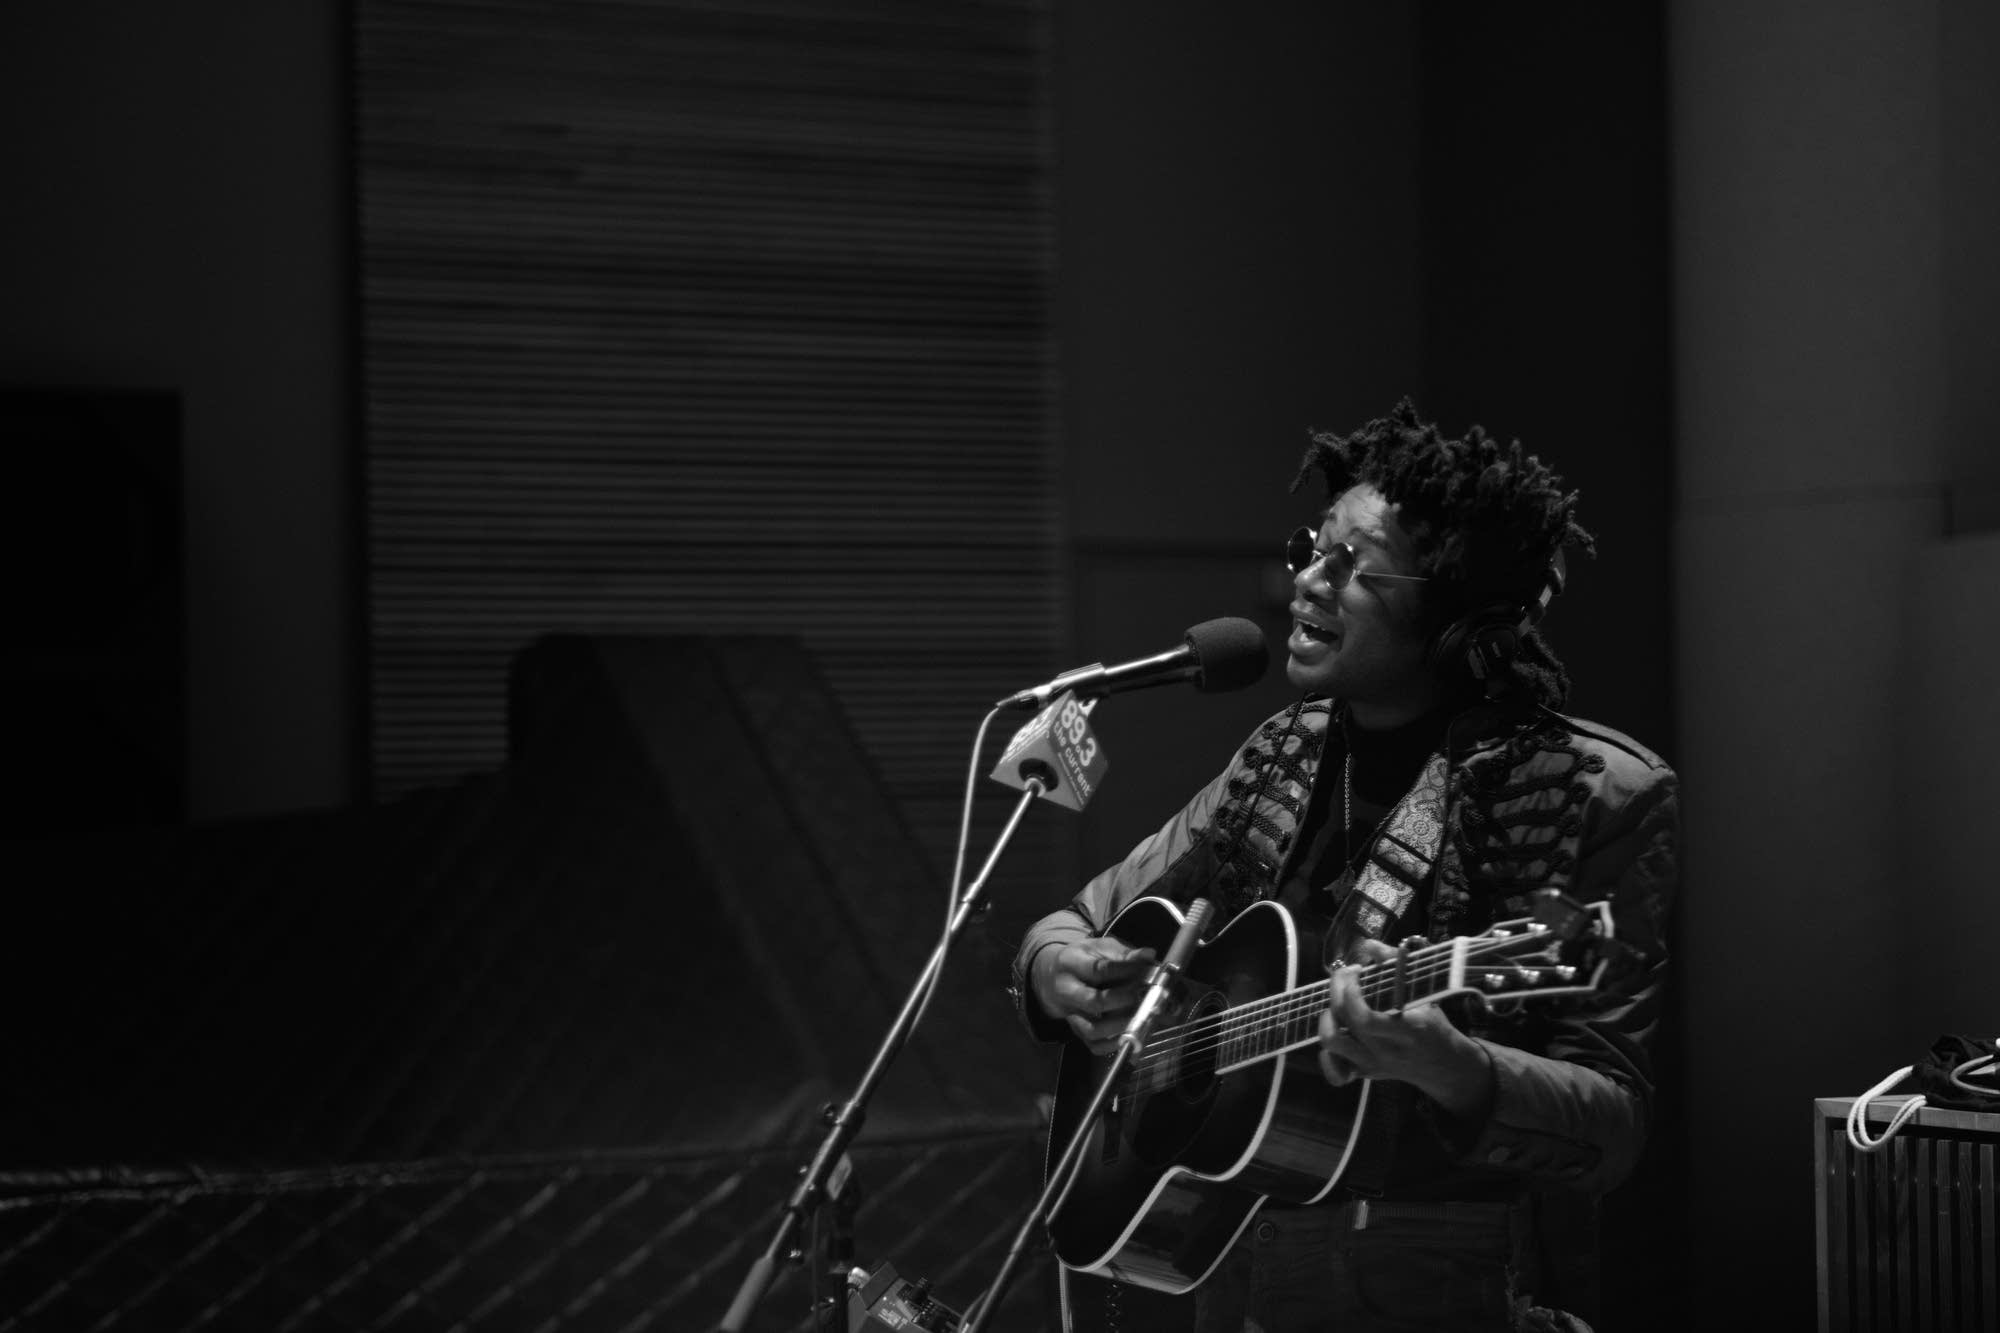 L.A. Salami performs in The Current studio